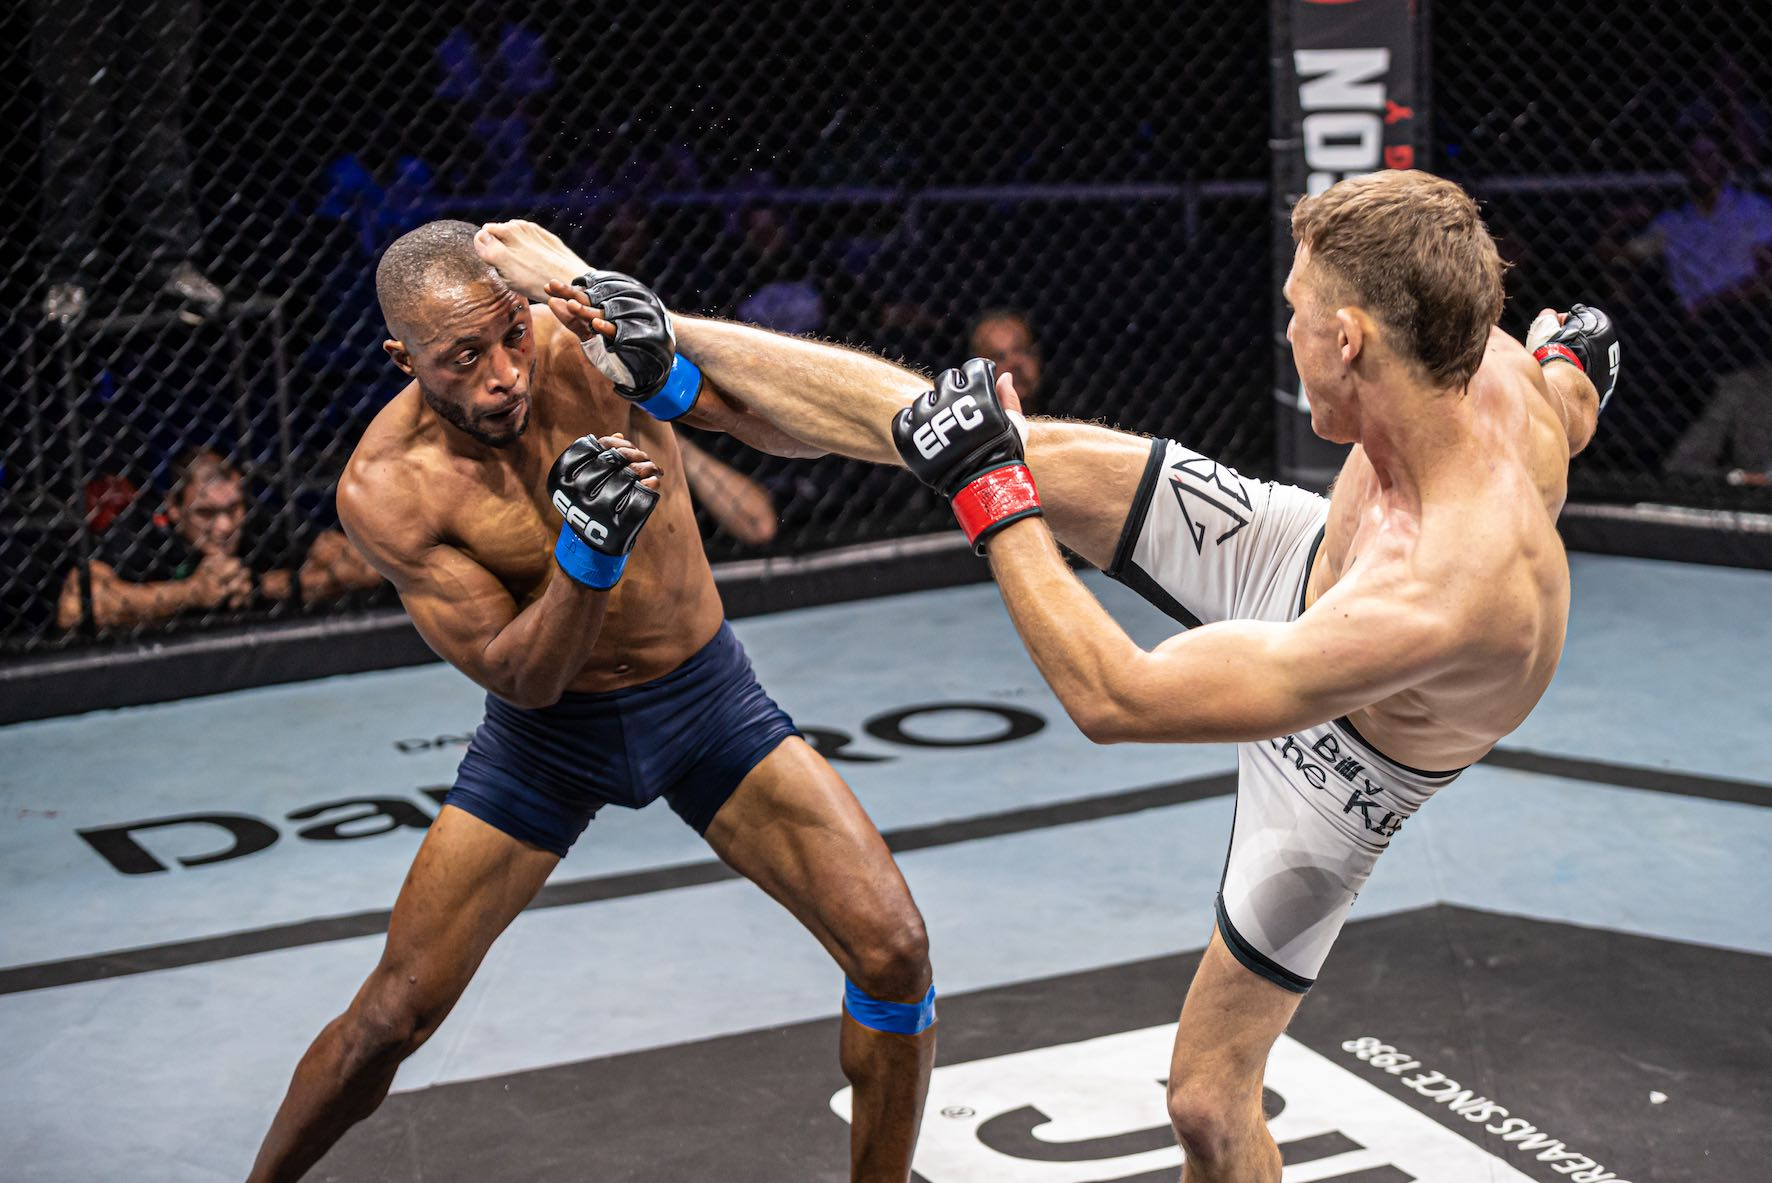 The 2020 South African Mixed Martial Arts calendar kicked off with EFC 84